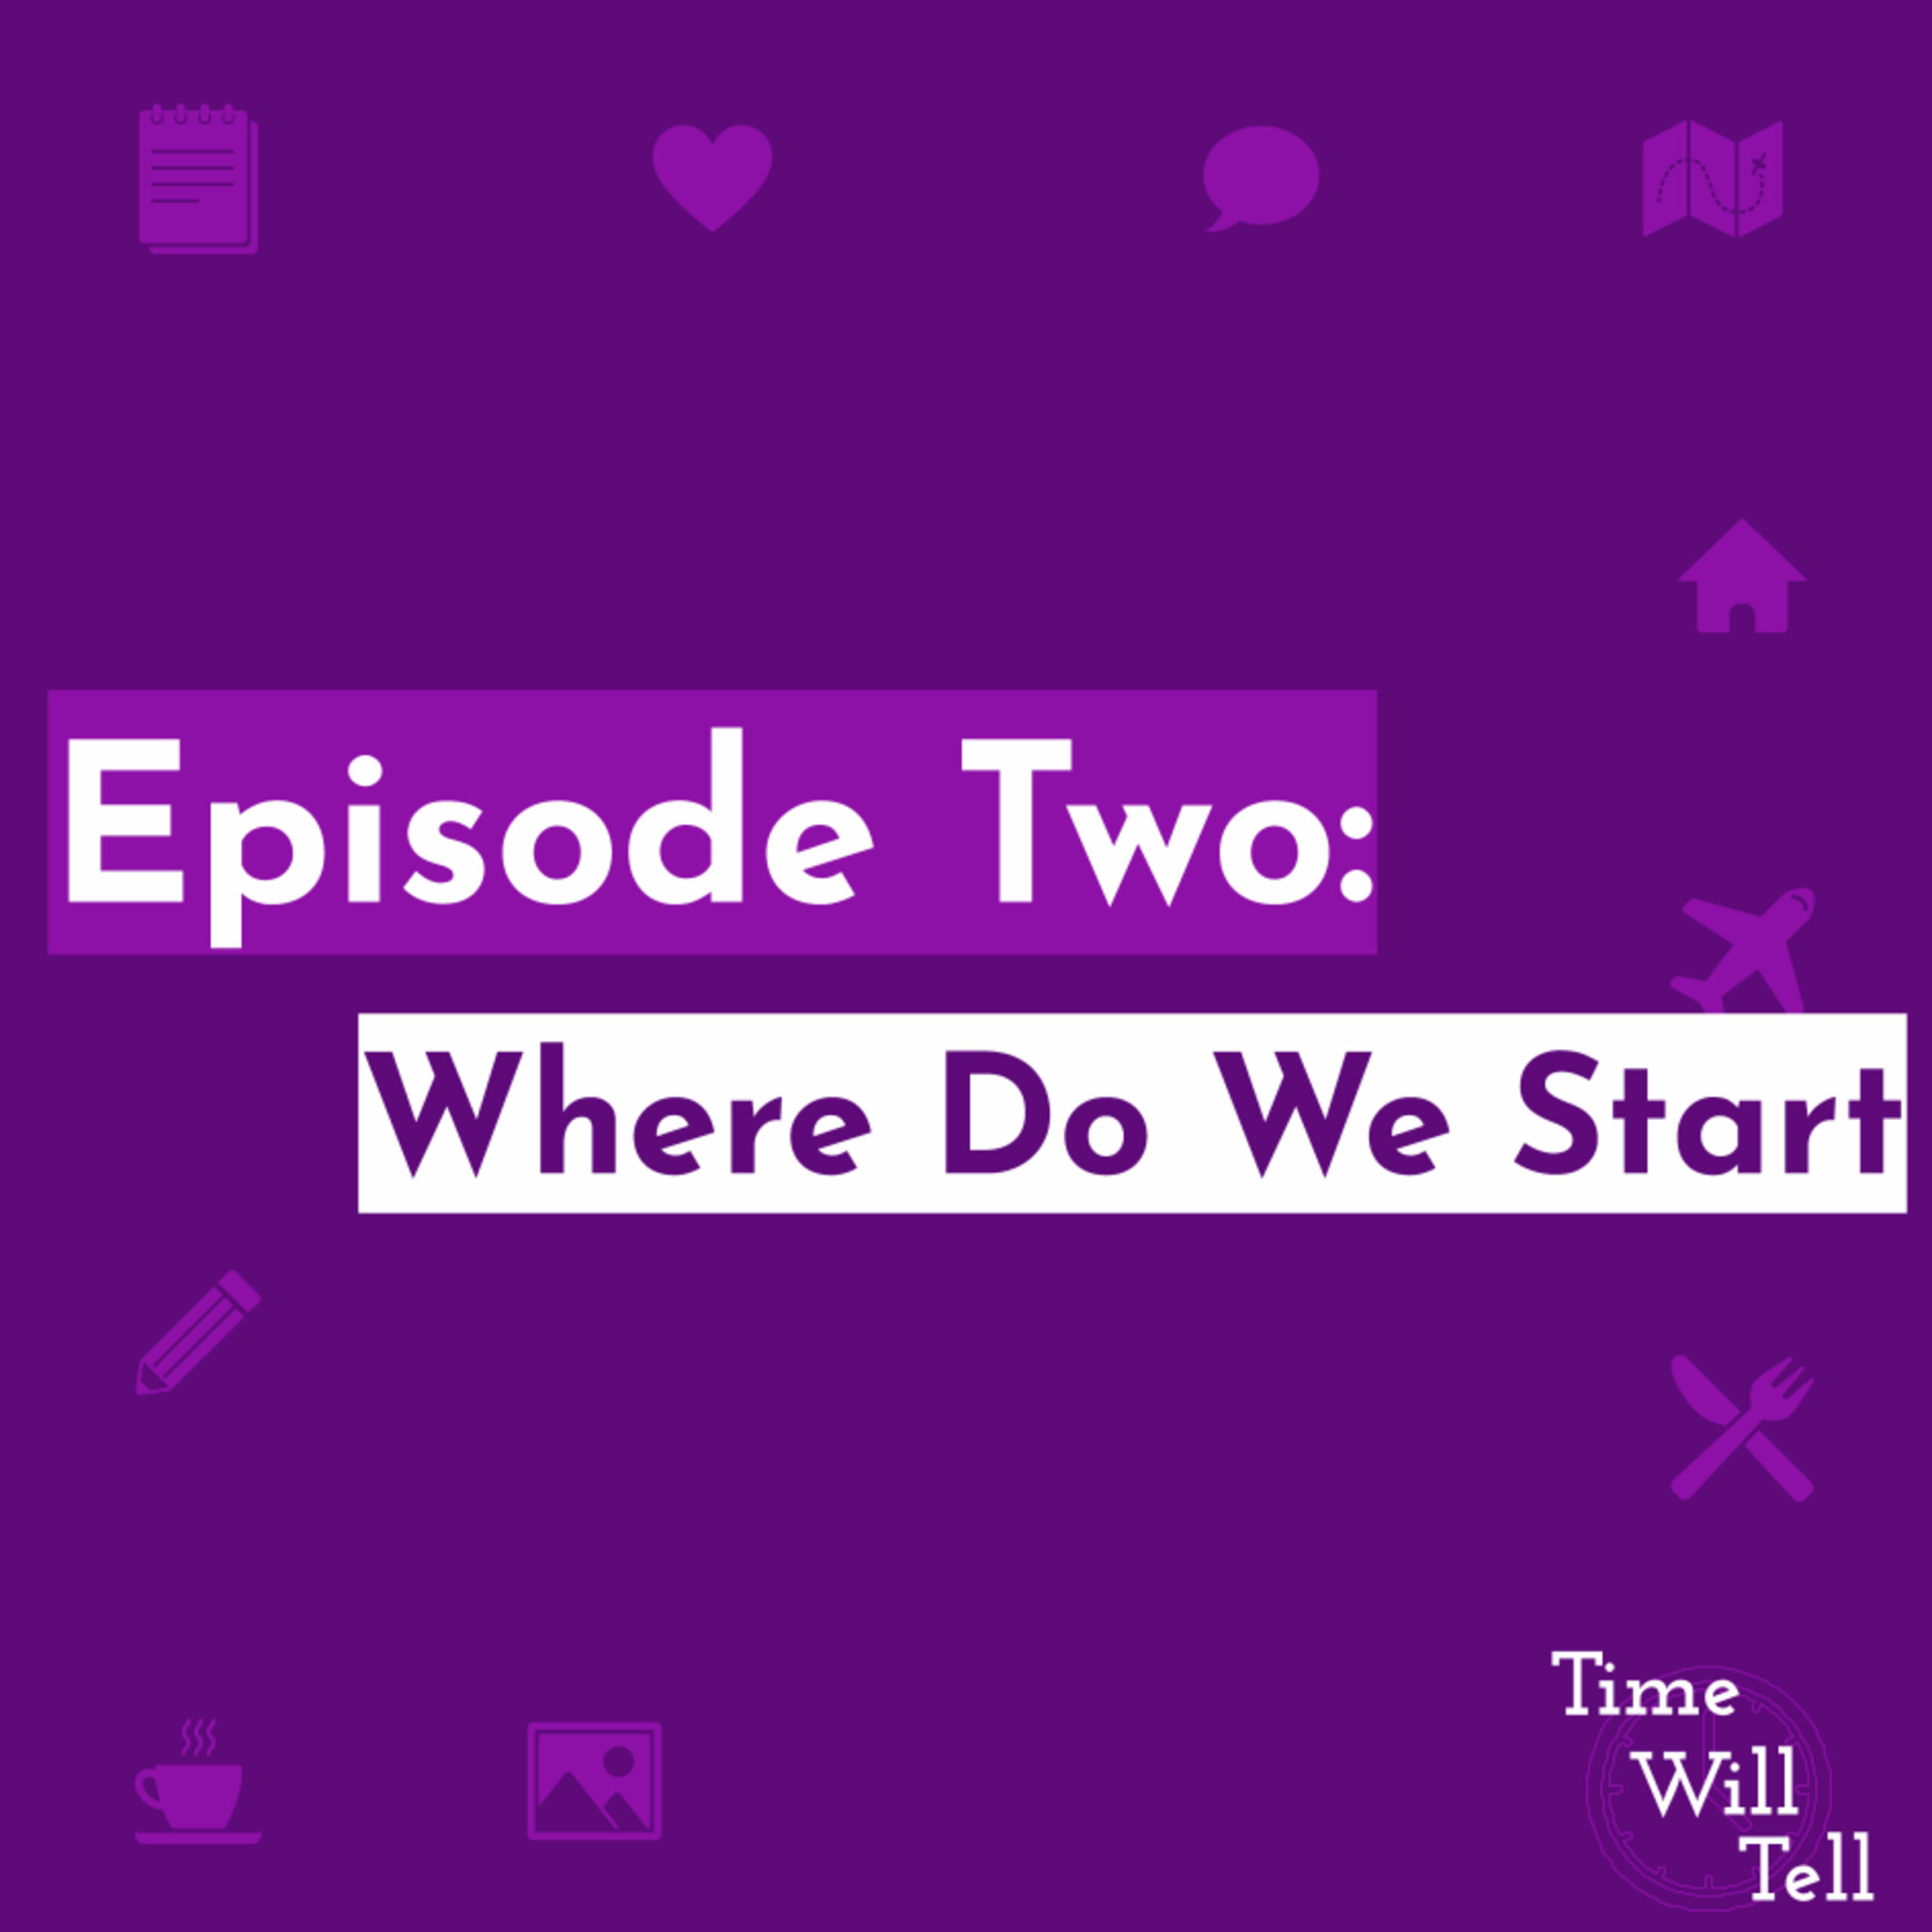 Episode Two: Where Do We Start?